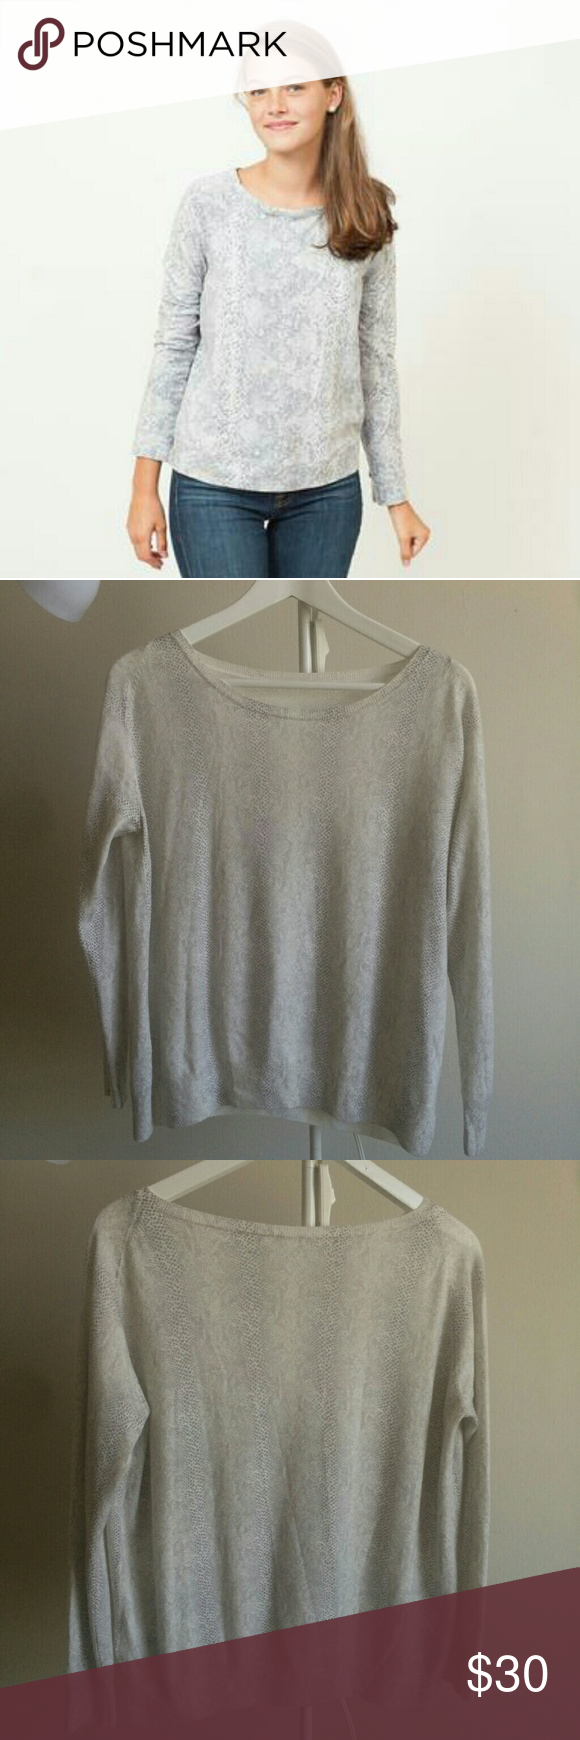 Joie animal print sweater top Size small. Tag removed intended. Super soft n cozy. In very good condition. No flaws. Snake print in cream grey color Joie Tops